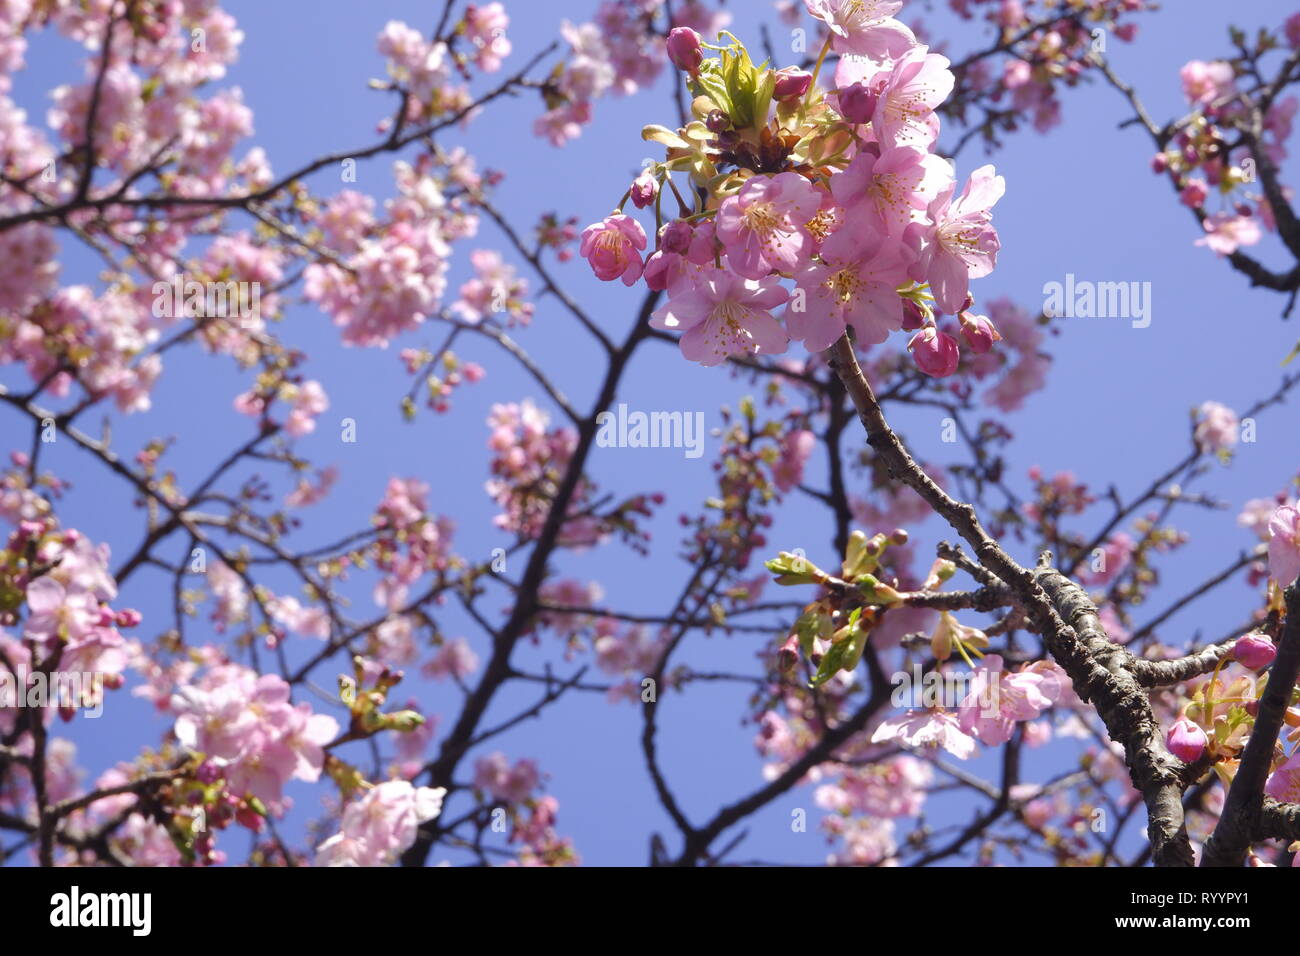 Close Up Japan Cherry Blossom Pink Flower Sakura Branch Nature Background Stock Photo Alamy